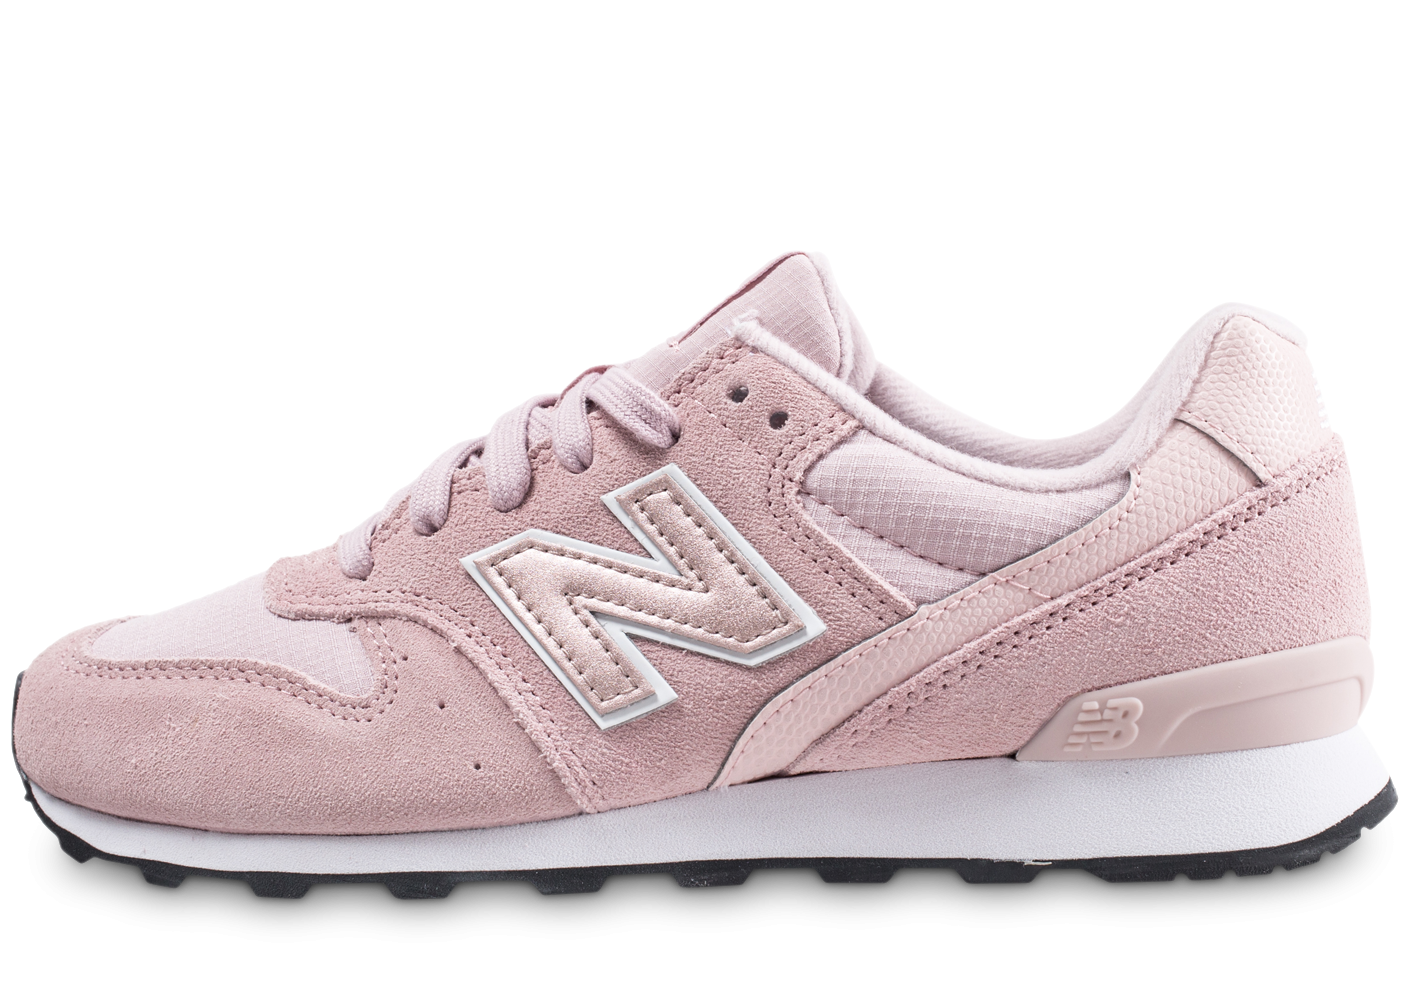 New Balance Femme Wr996mg Rose Baskets